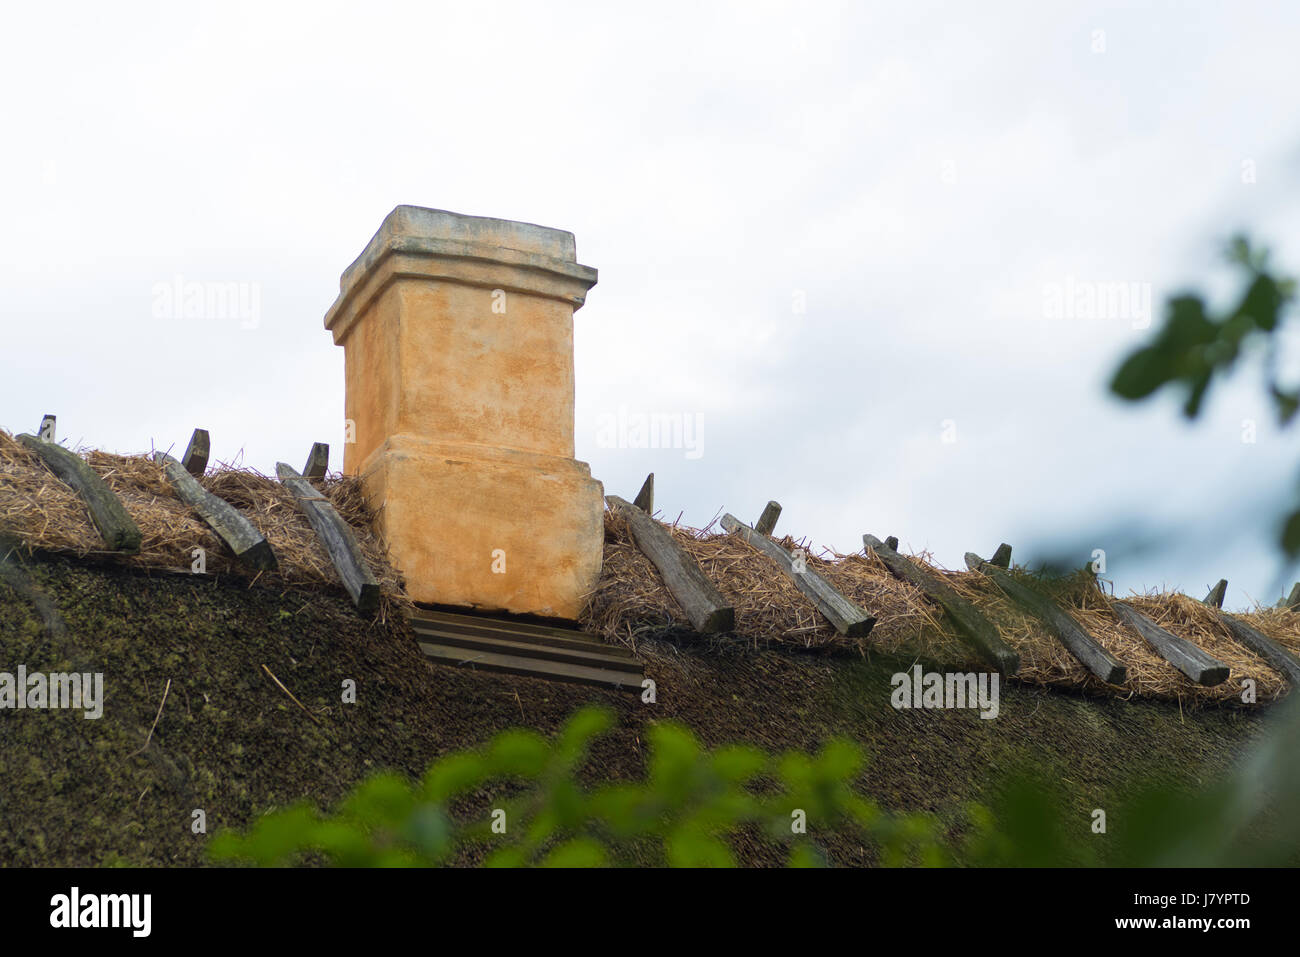 typical thatched roof with chimney in the old fishermen's village of Kikhavn - Stock Image